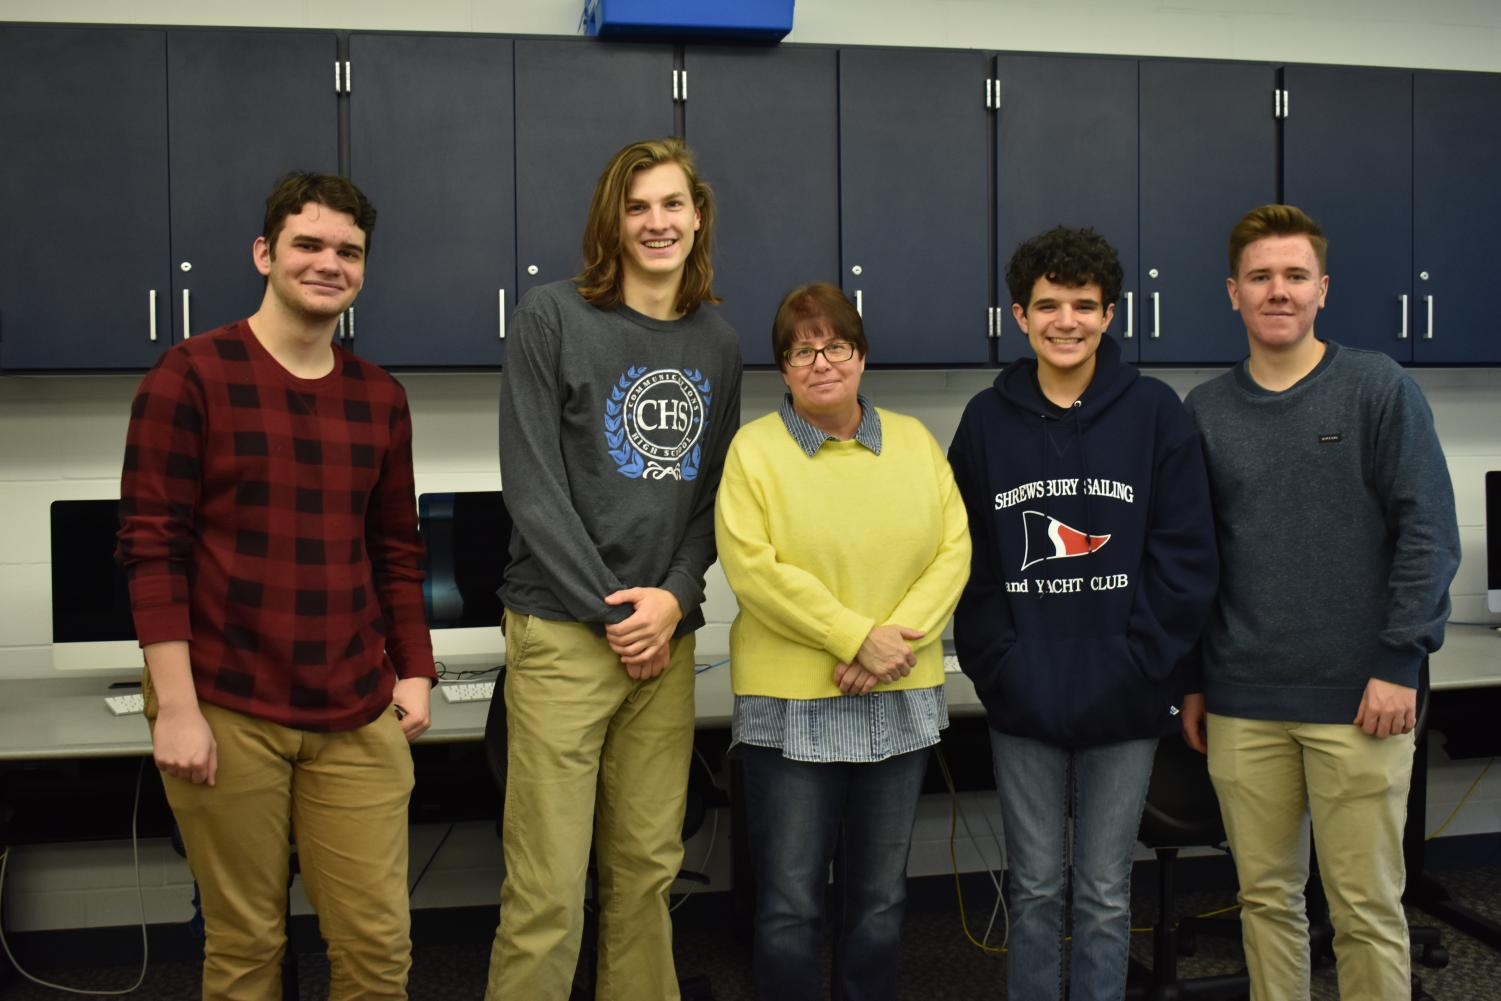 Seniors Vaughn Battista of Tinton Falls, Colin Martin of Middletown, Jack Hester of Oceanport, and Mike Cielecki of Spring Lake Heights pose with Java teacher Laura Gesin.